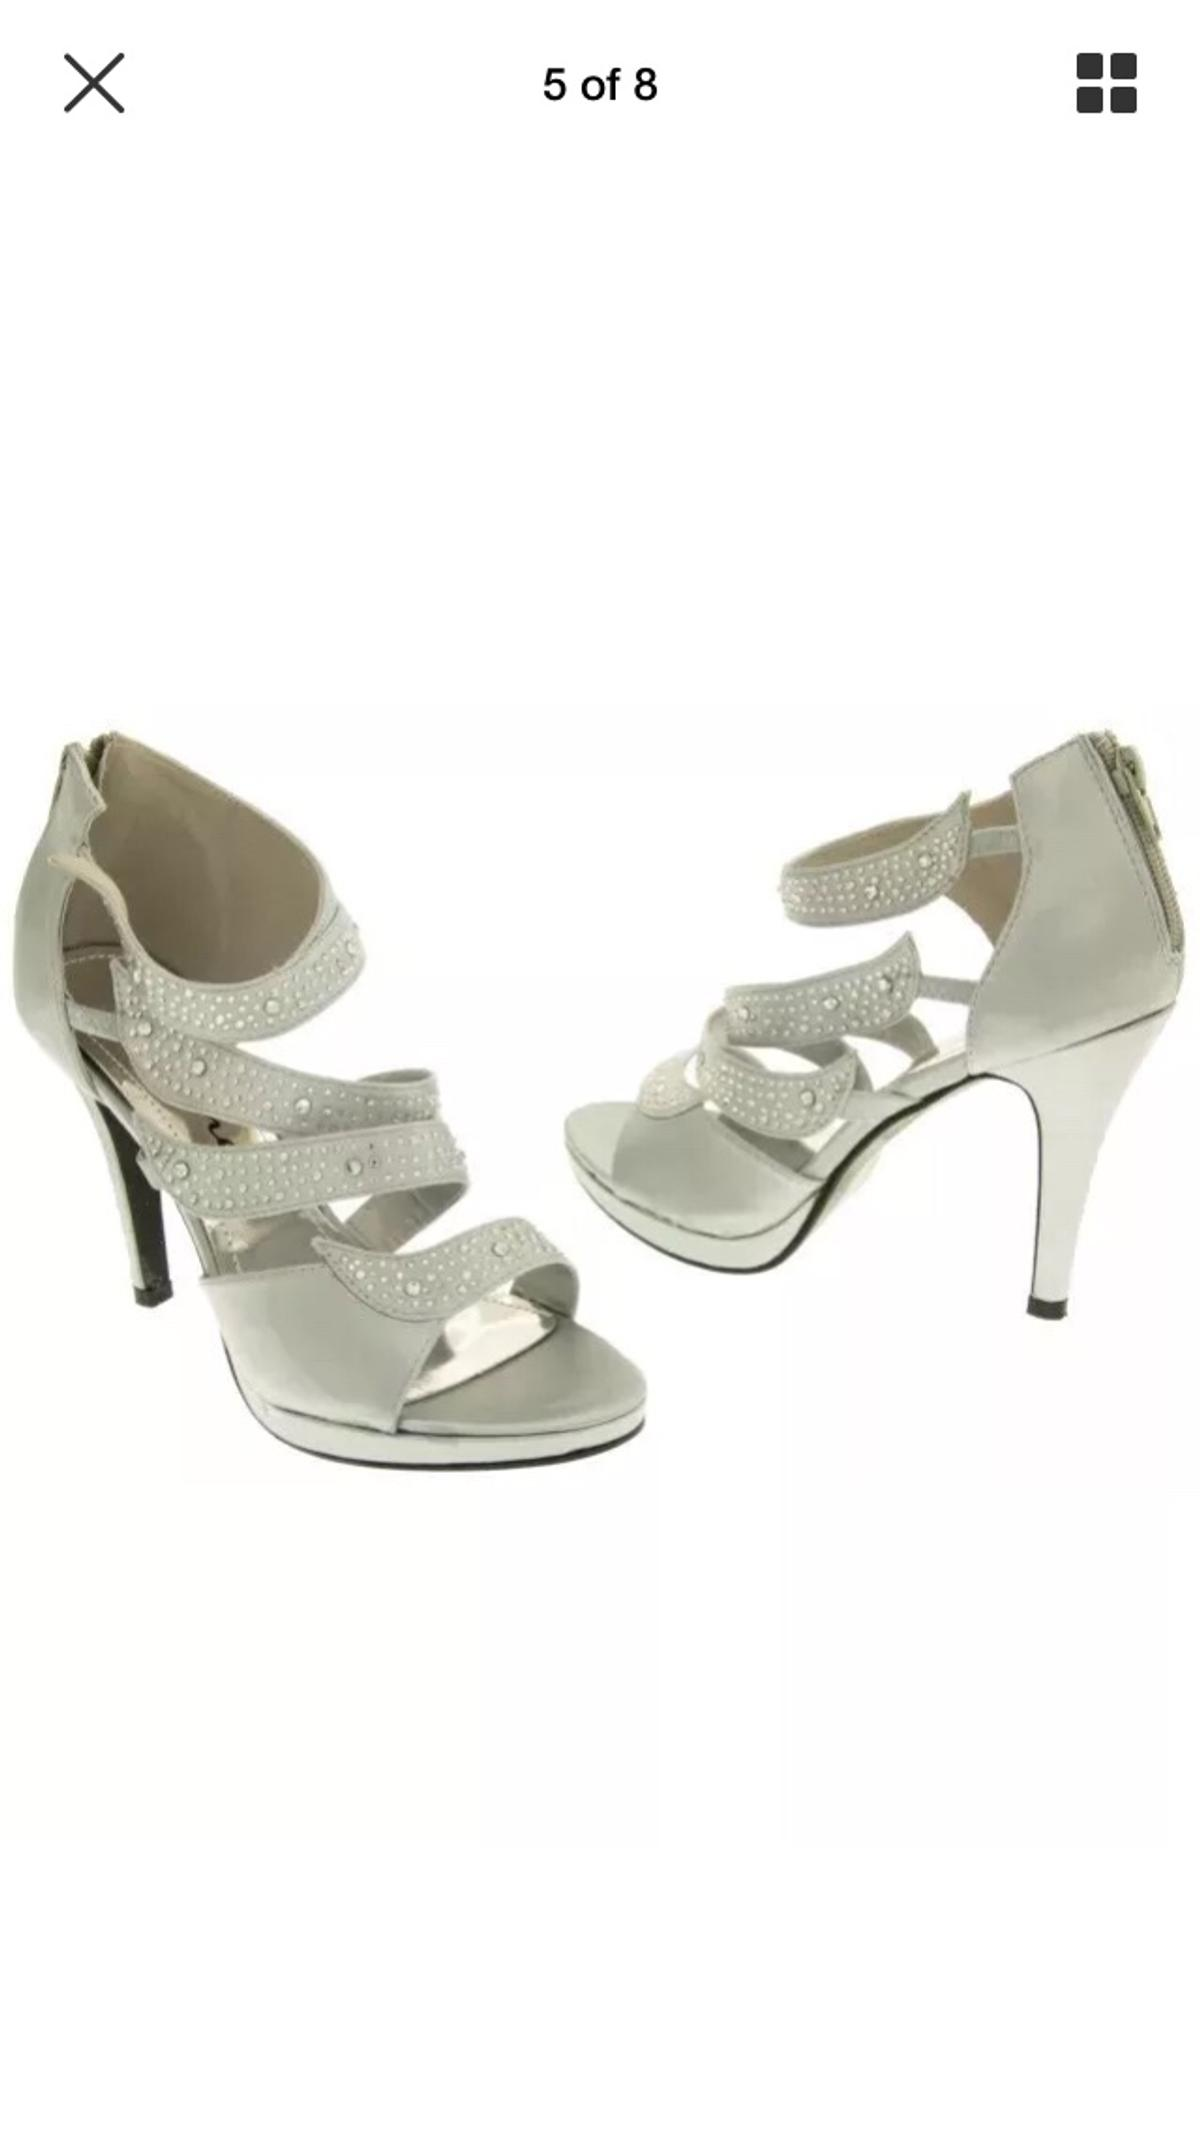 612fca36e5407 NEW SILVER GREY SATIN PARTY SHOES UK 3-8 in WF15 Kirklees for £4.00 ...